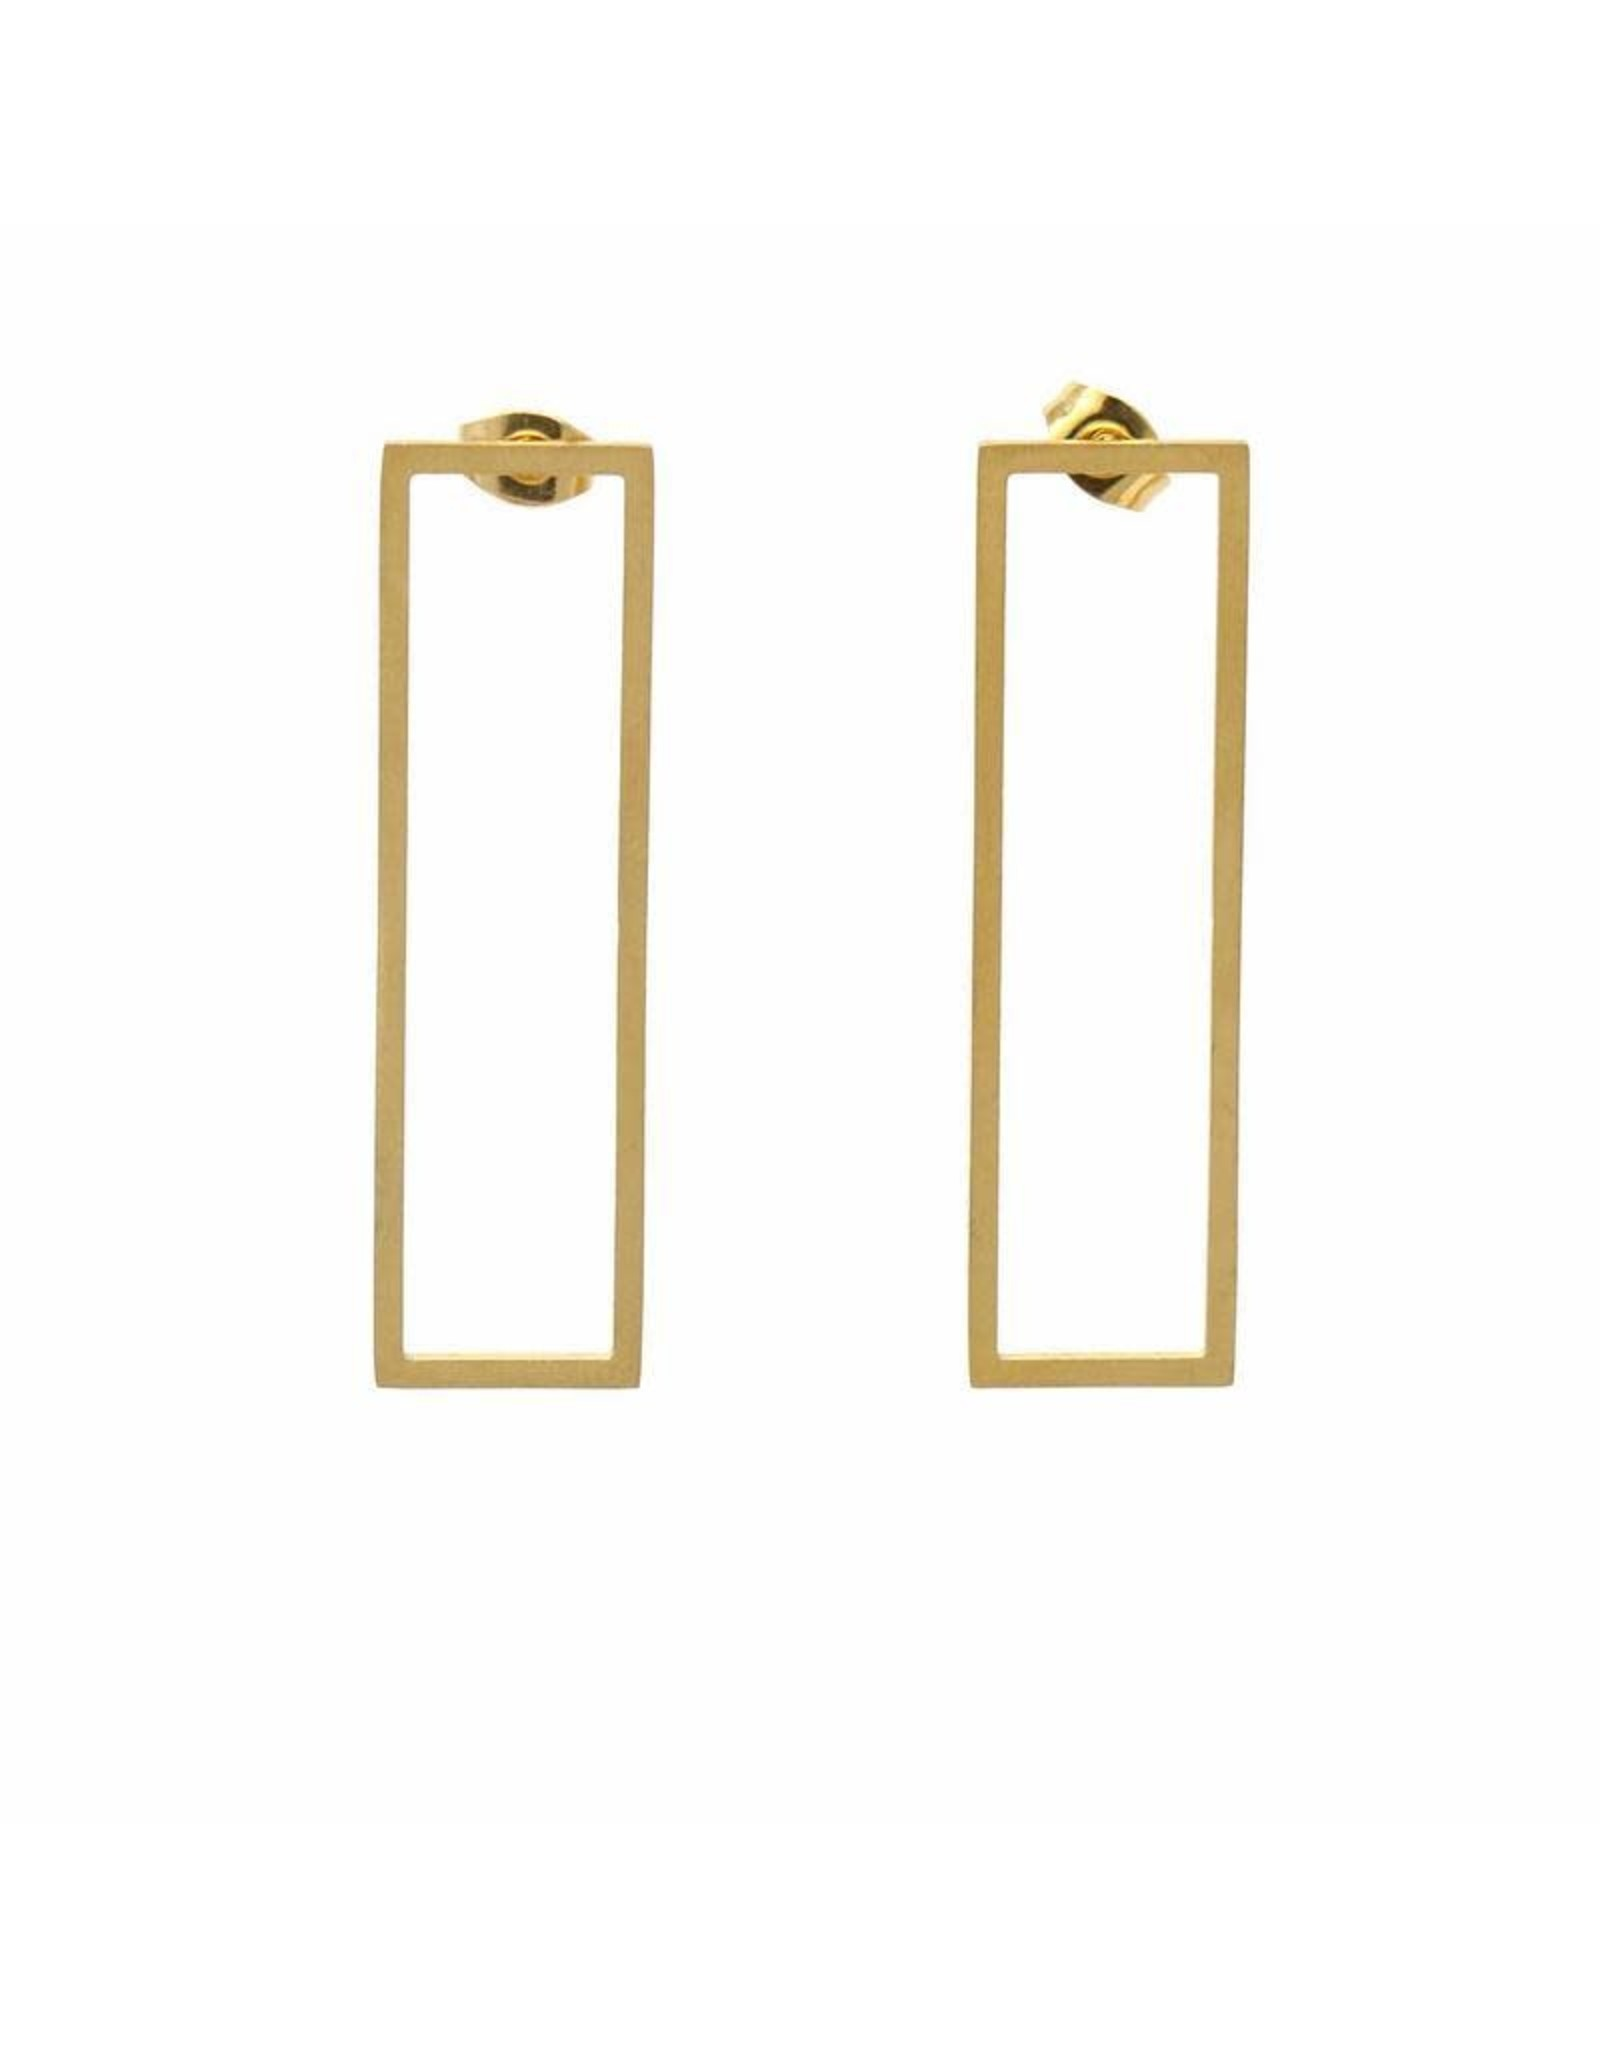 Gold Plated Rectangle Studs, Beijing